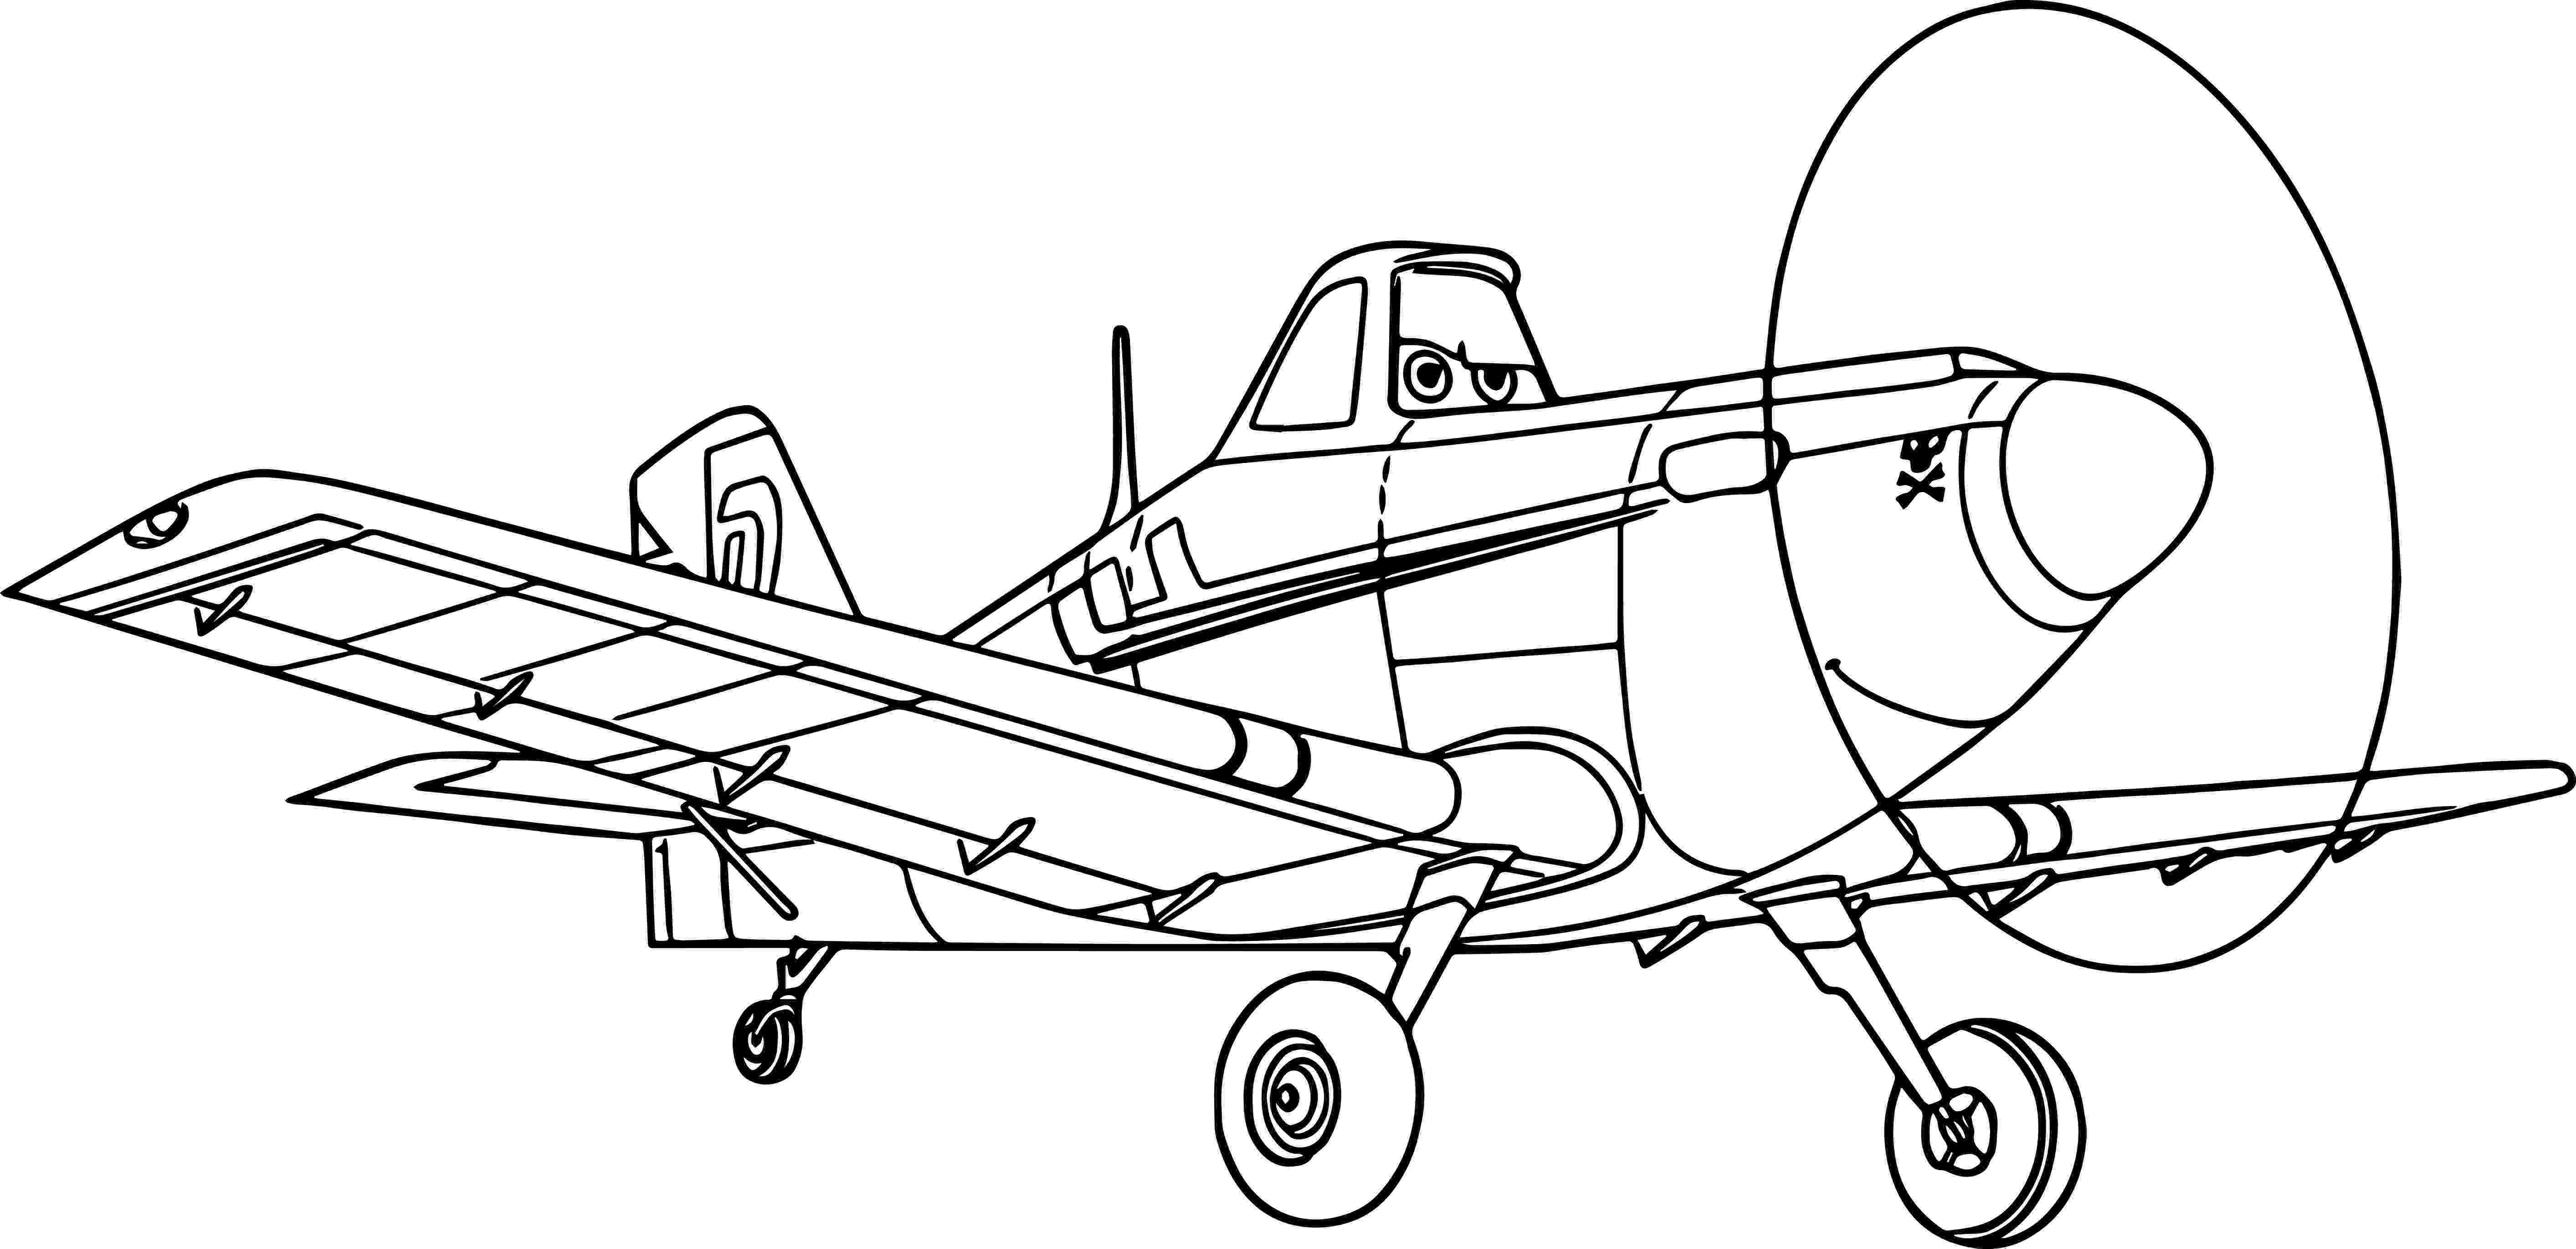 planes colouring pages paper airplanes drawing at getdrawingscom free for pages planes colouring